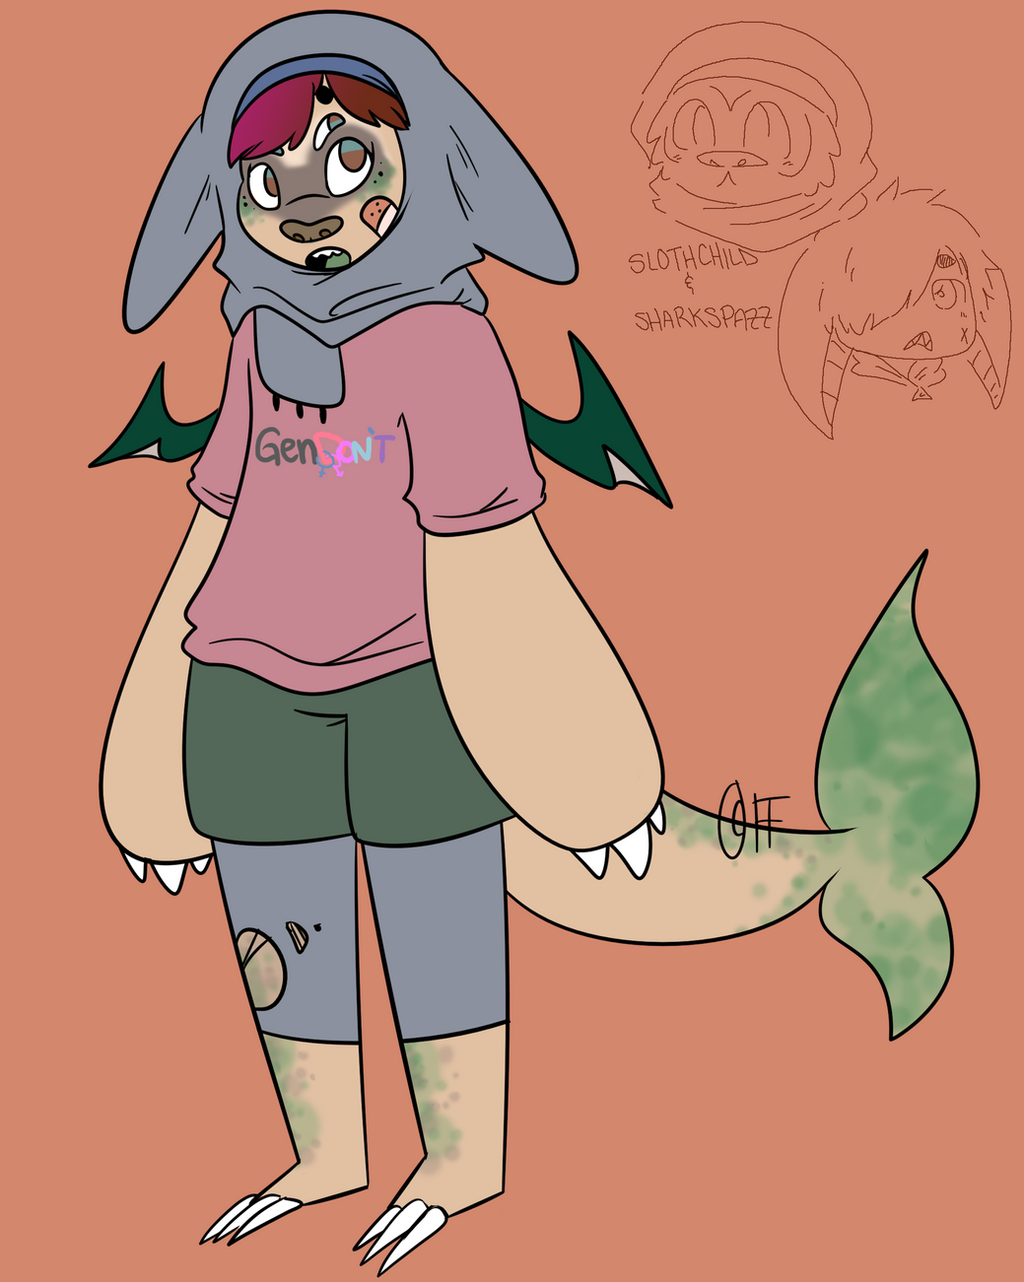 fusion sloth shark by fanface on fusion sloth shark by fanface